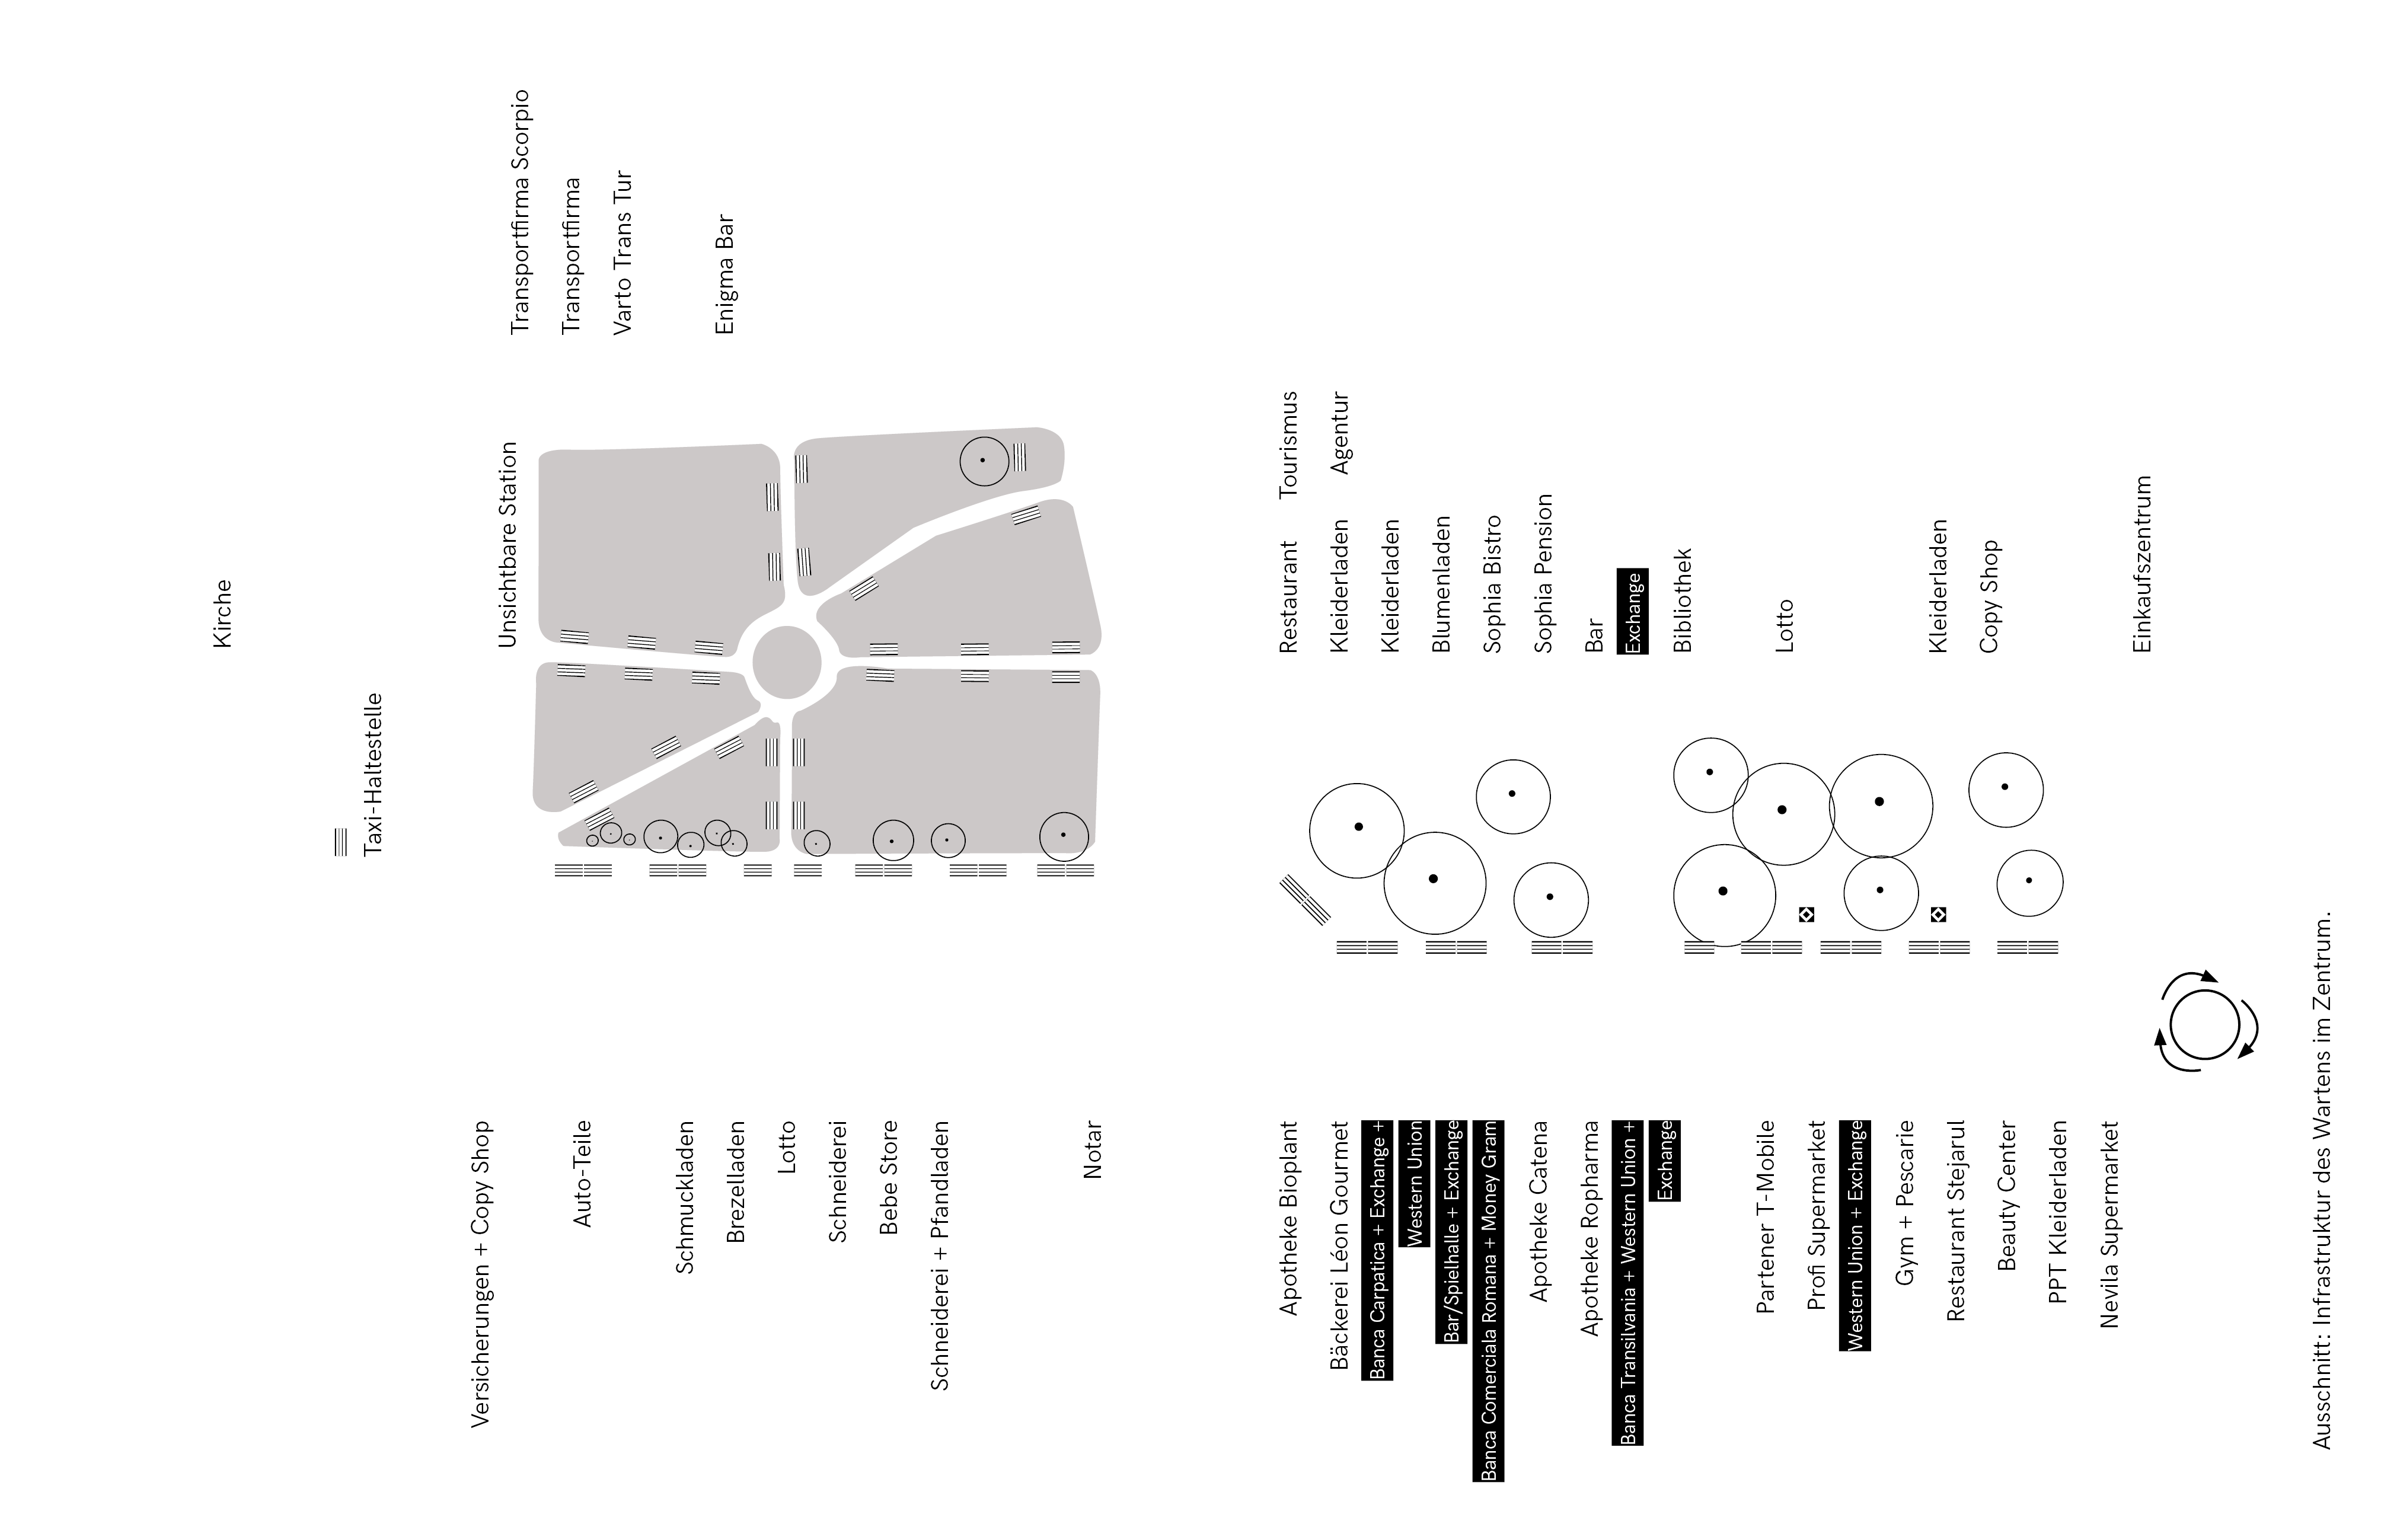 http://www.ud.hcu-hamburg.de/projects/master-theses/the-translocal-use-of-the-urban-urban-arrangements-in-comanesti-romania-2017